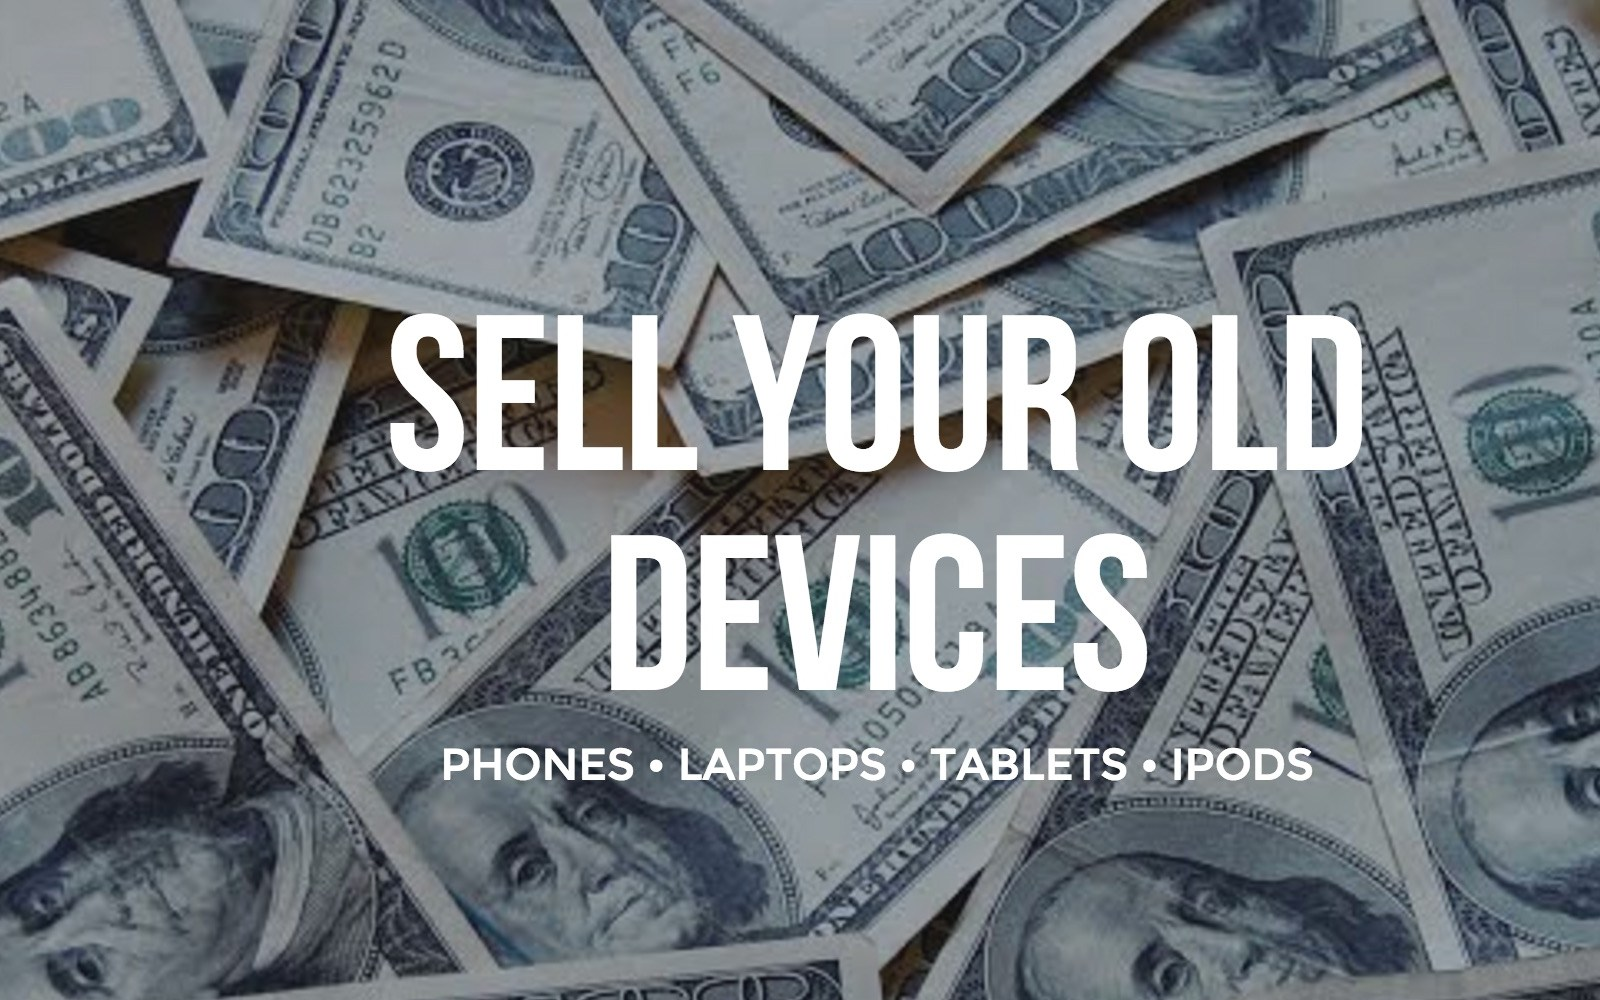 Announcing the best value fix or cash trade-in for your unused/old iPhones, iPads and other Apple products